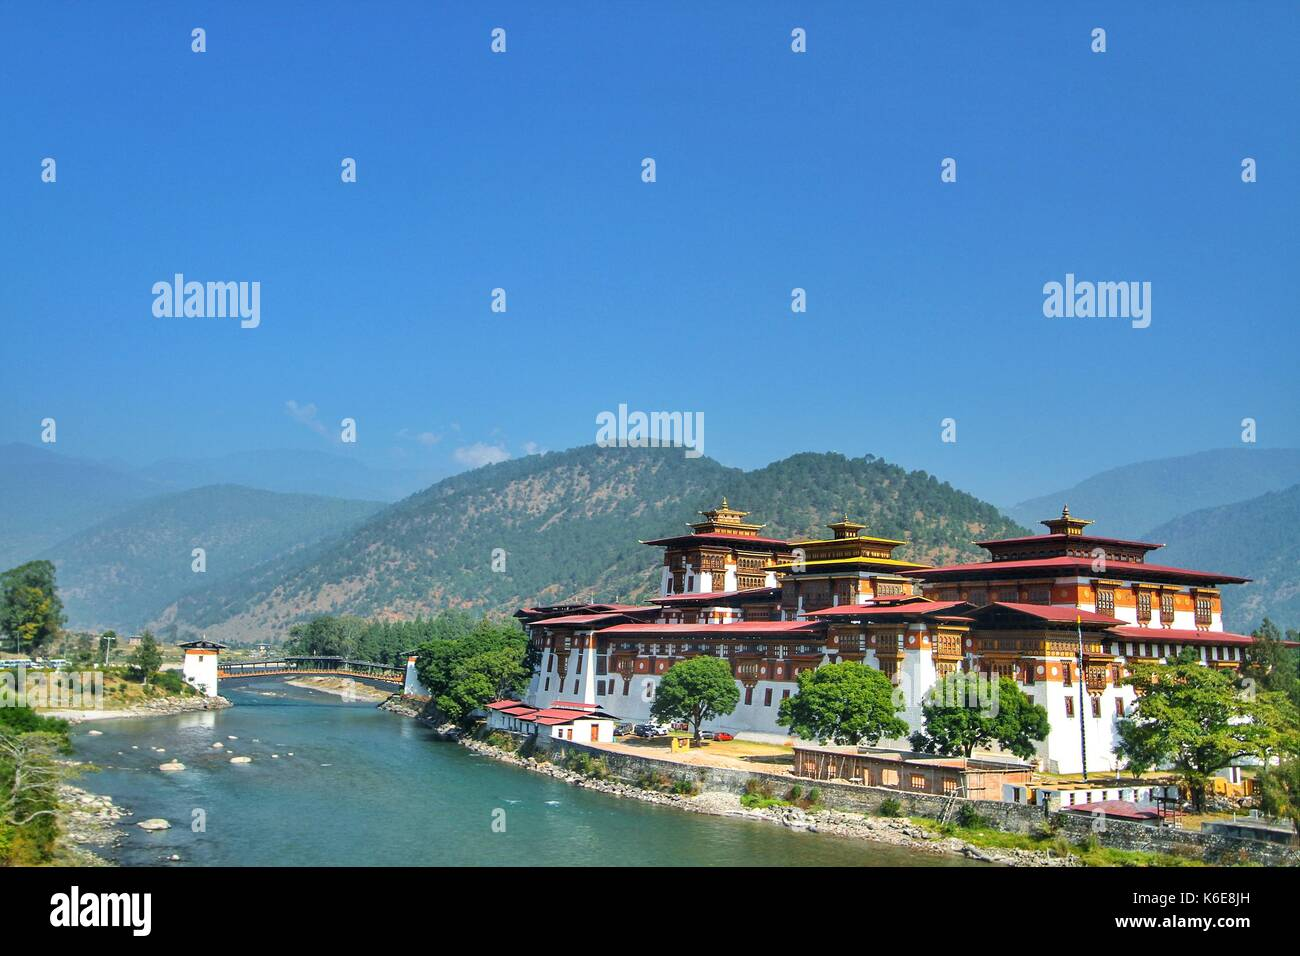 Punakha Dzong Monastery or Pungthang Dewachen Phodrang (Palace of Great Happiness) and Mo Chhu river in Punakha, the old capital of Bhutan. - Stock Image